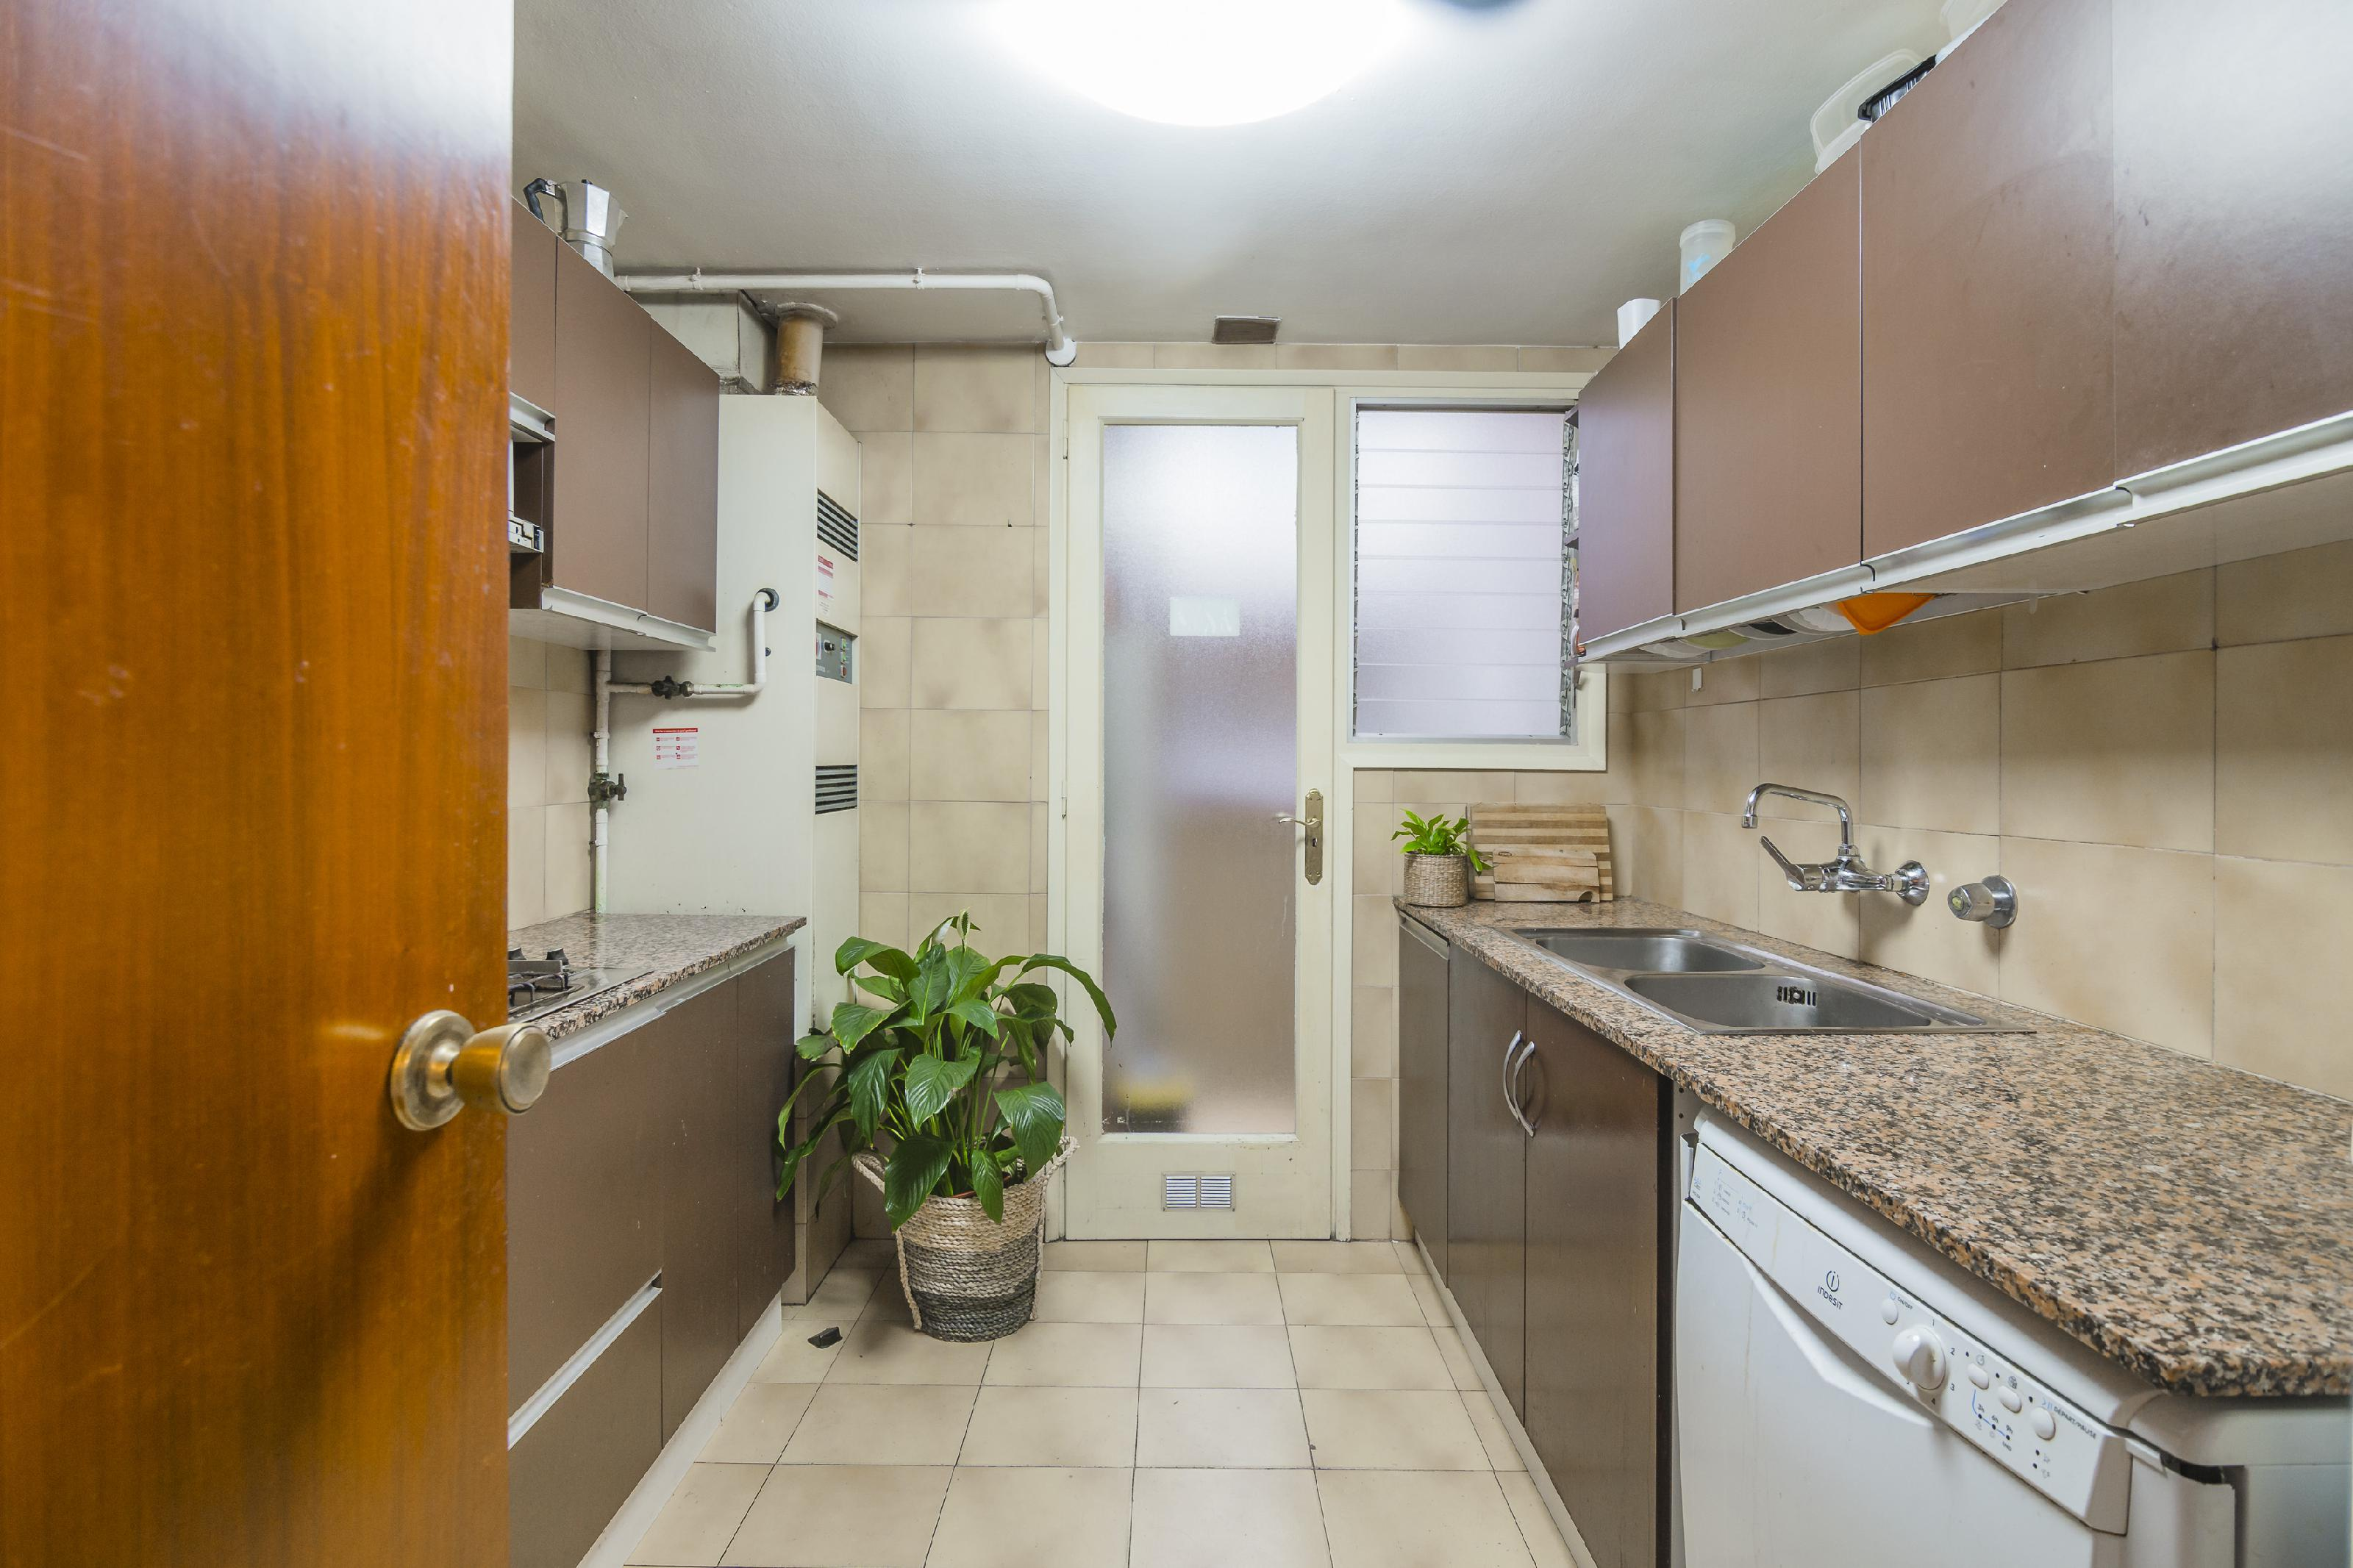 239426 Flat for sale in Les Corts, Les Corts 11